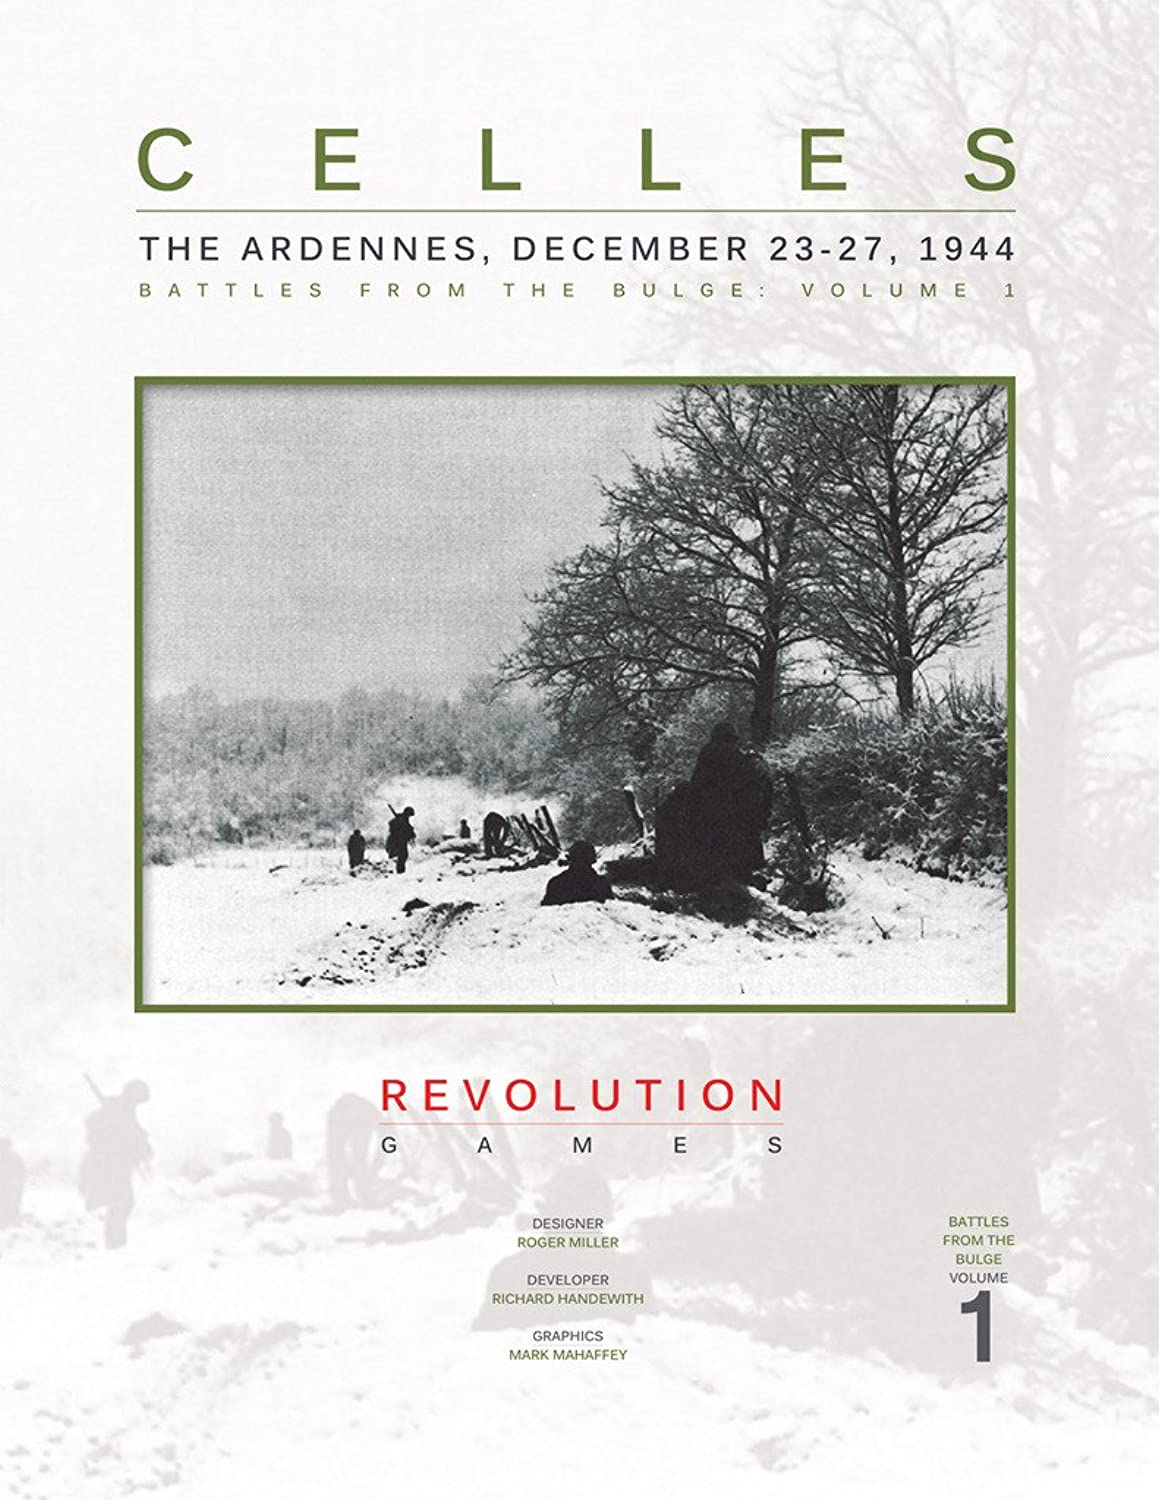 REV  Celles, the Ardennes, December 2327, 1944, Battles fo the Bulge, Board Game by REV Revolution Games